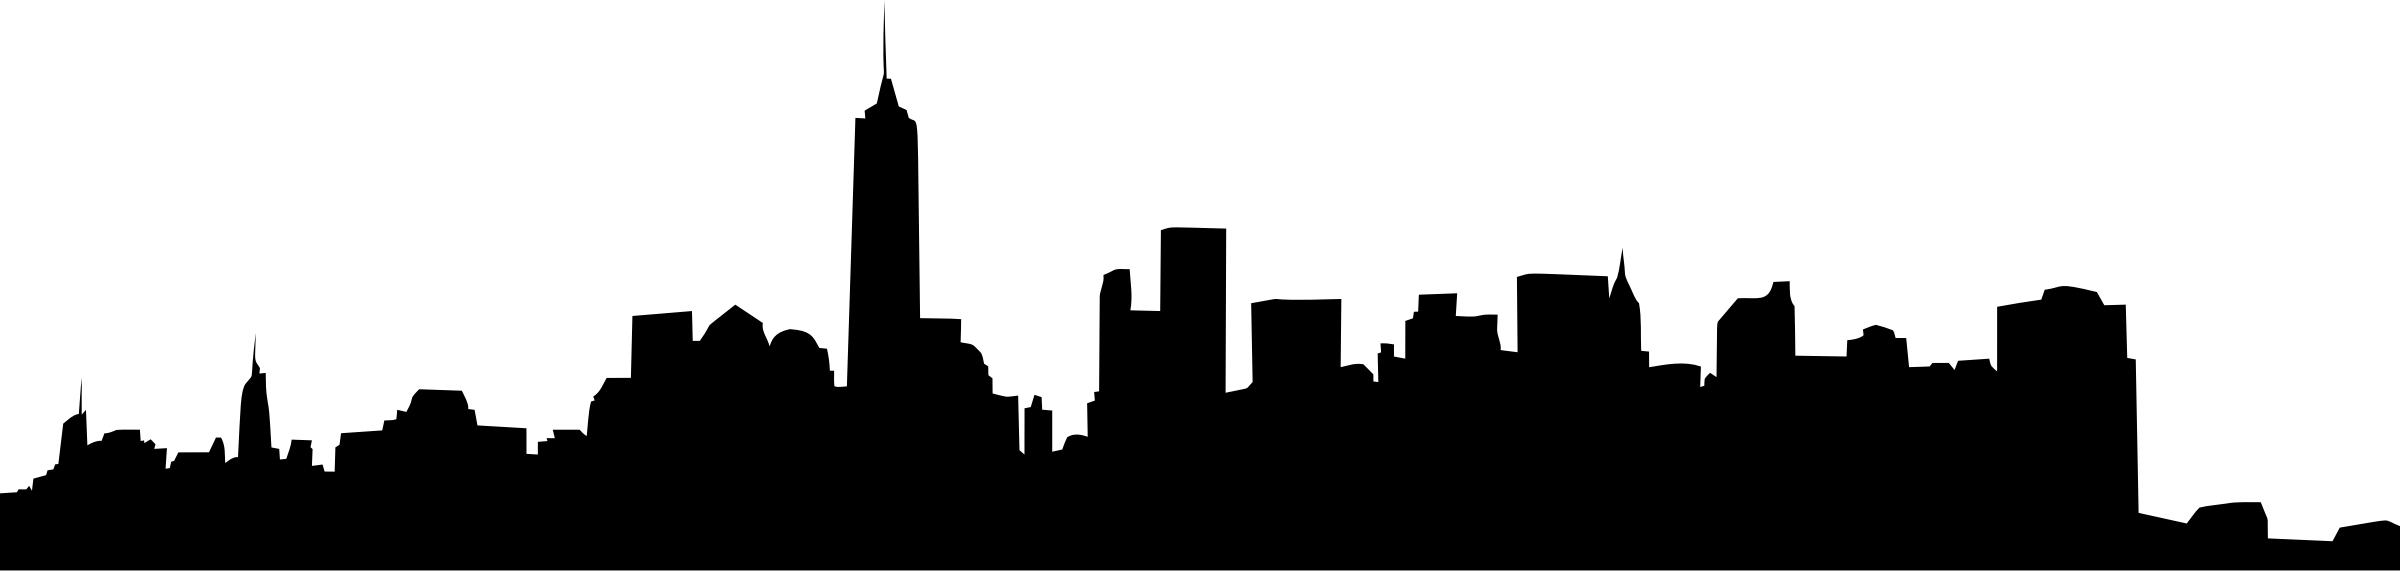 2400x571 Generic Cityscape Silhouette 4 Icons Png